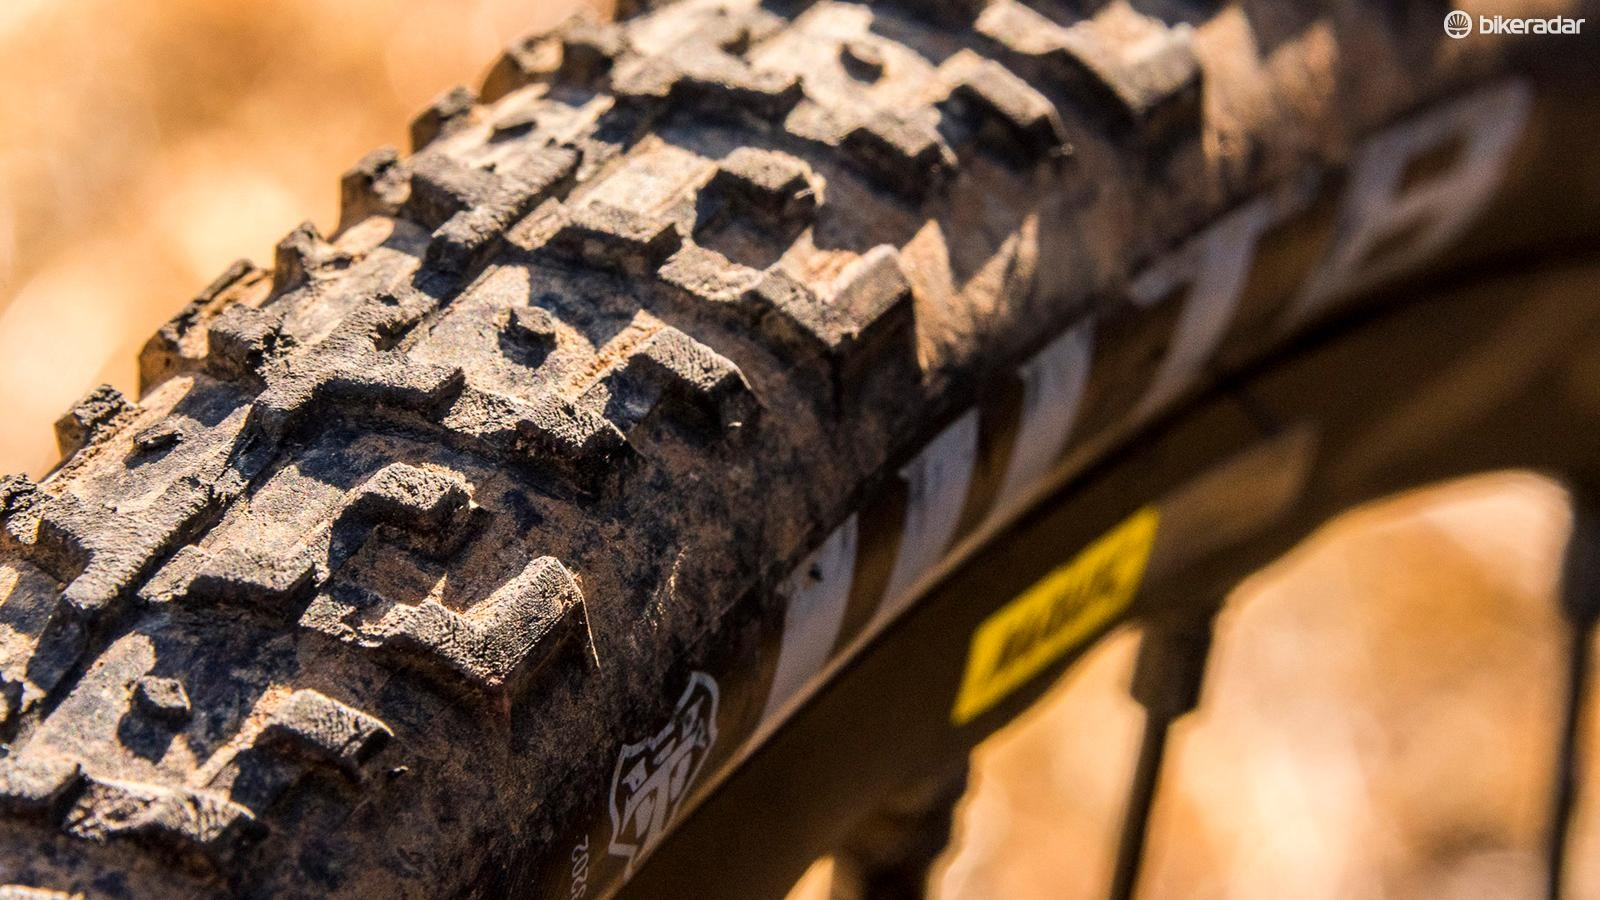 Plenty of widely spaced knobs make the Nano 40c a great tire for monster-cross adventures